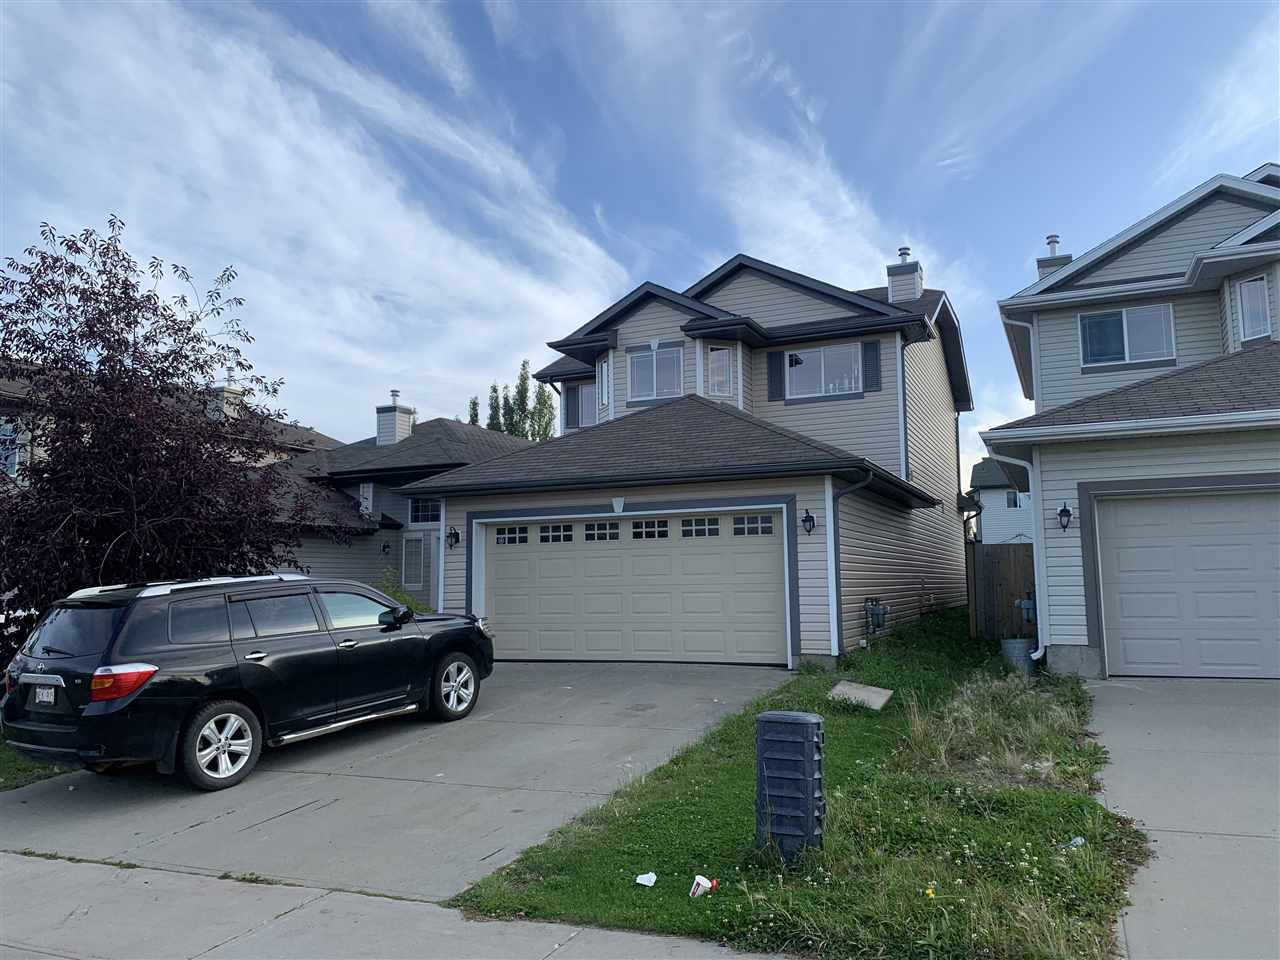 Photo of 5523 165 Ave NW